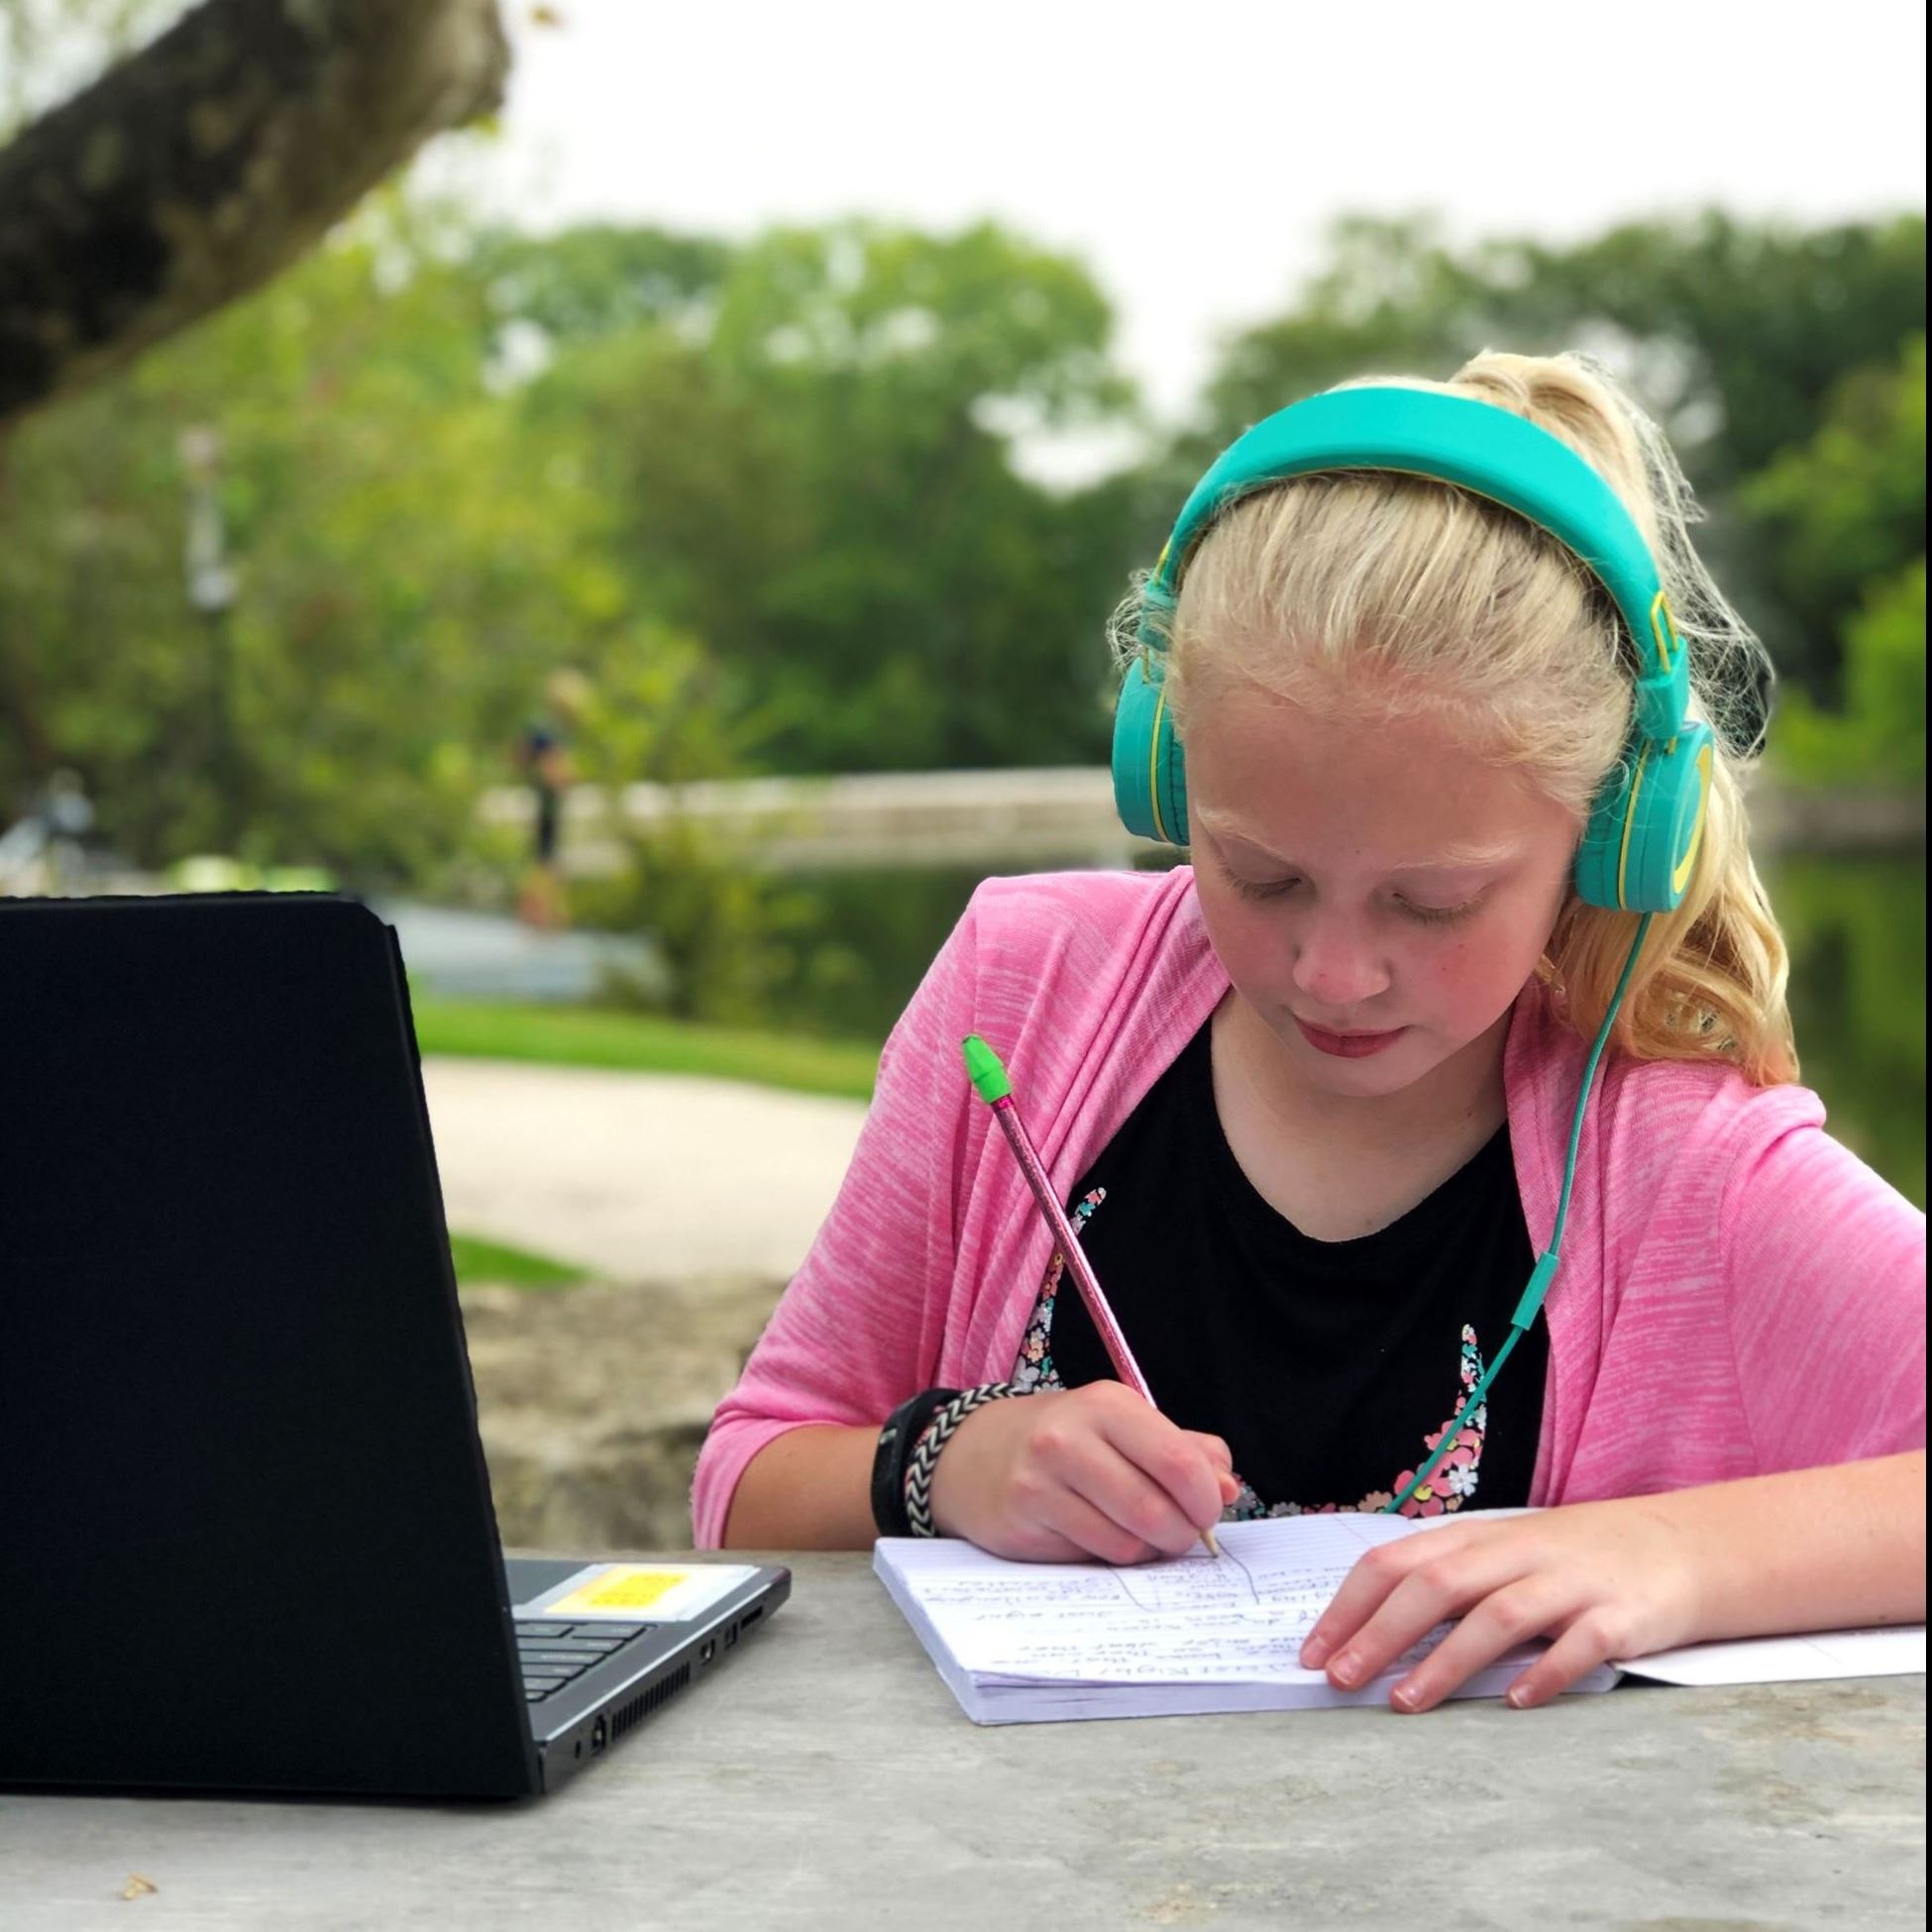 Young girl doing school work outdoors